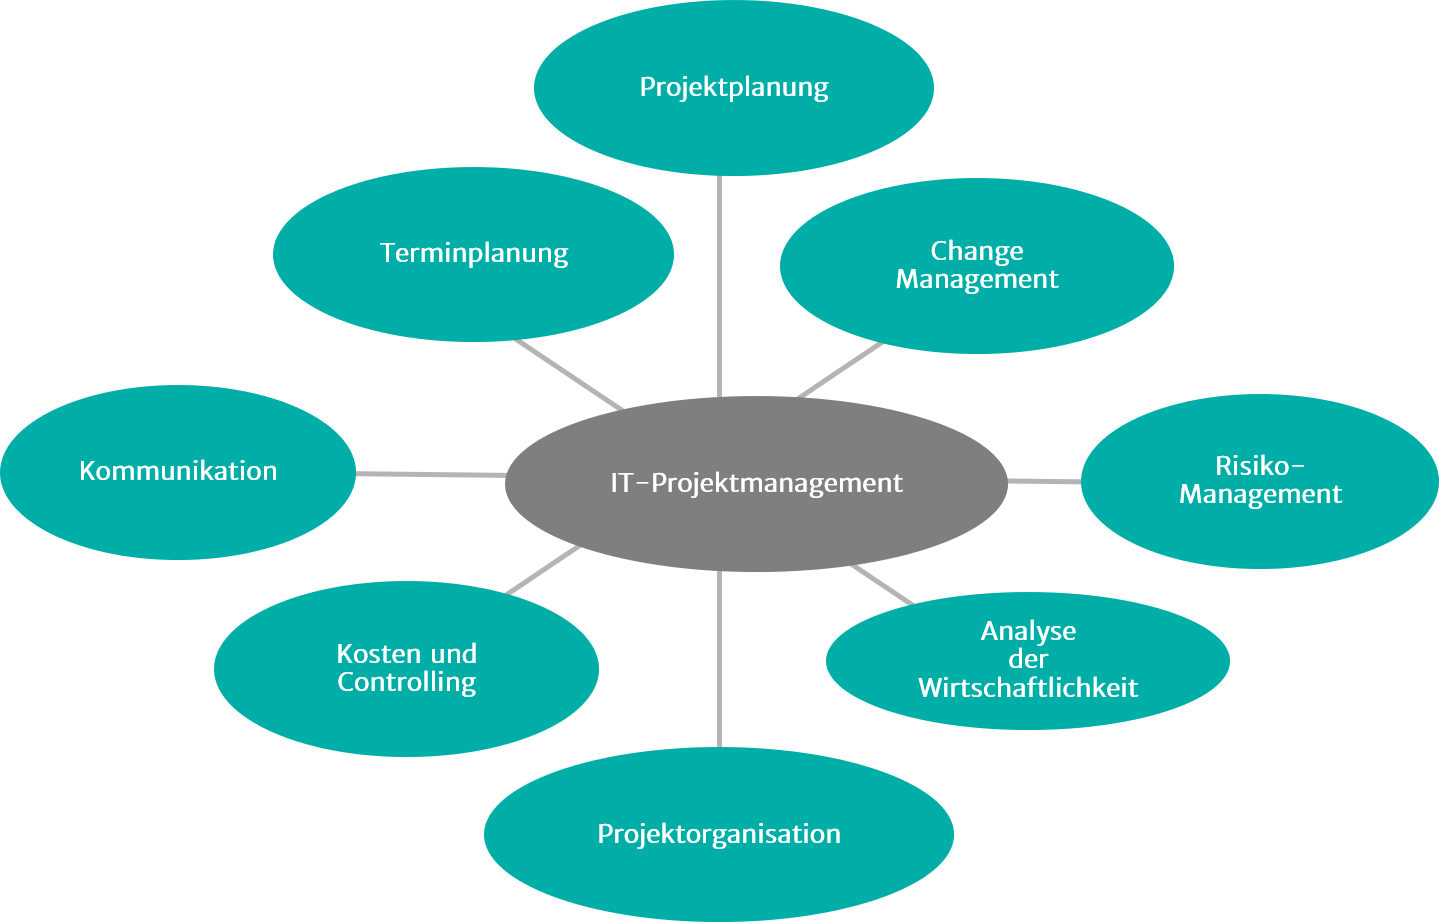 Illustration zu IT-Projektmanagement